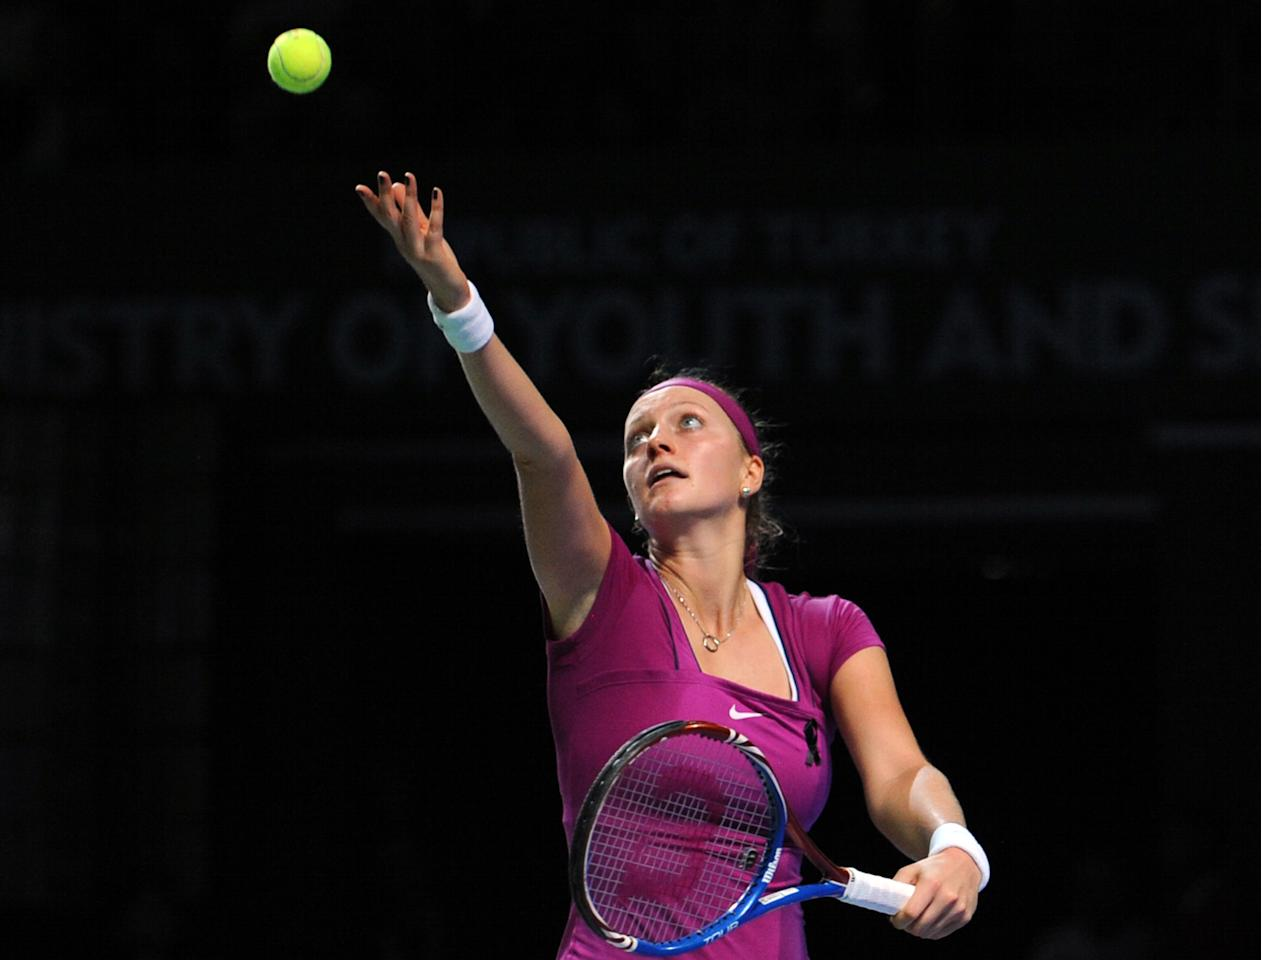 Petra Kvitova of Czech Republic serves to Vera Zvonareva of Russia(not pictured) during their WTA tennis championships match in Istanbul, on October 25, 2011. AFP PHOTO/BULENT KILIC (Photo credit should read BULENT KILIC/AFP/Getty Images)